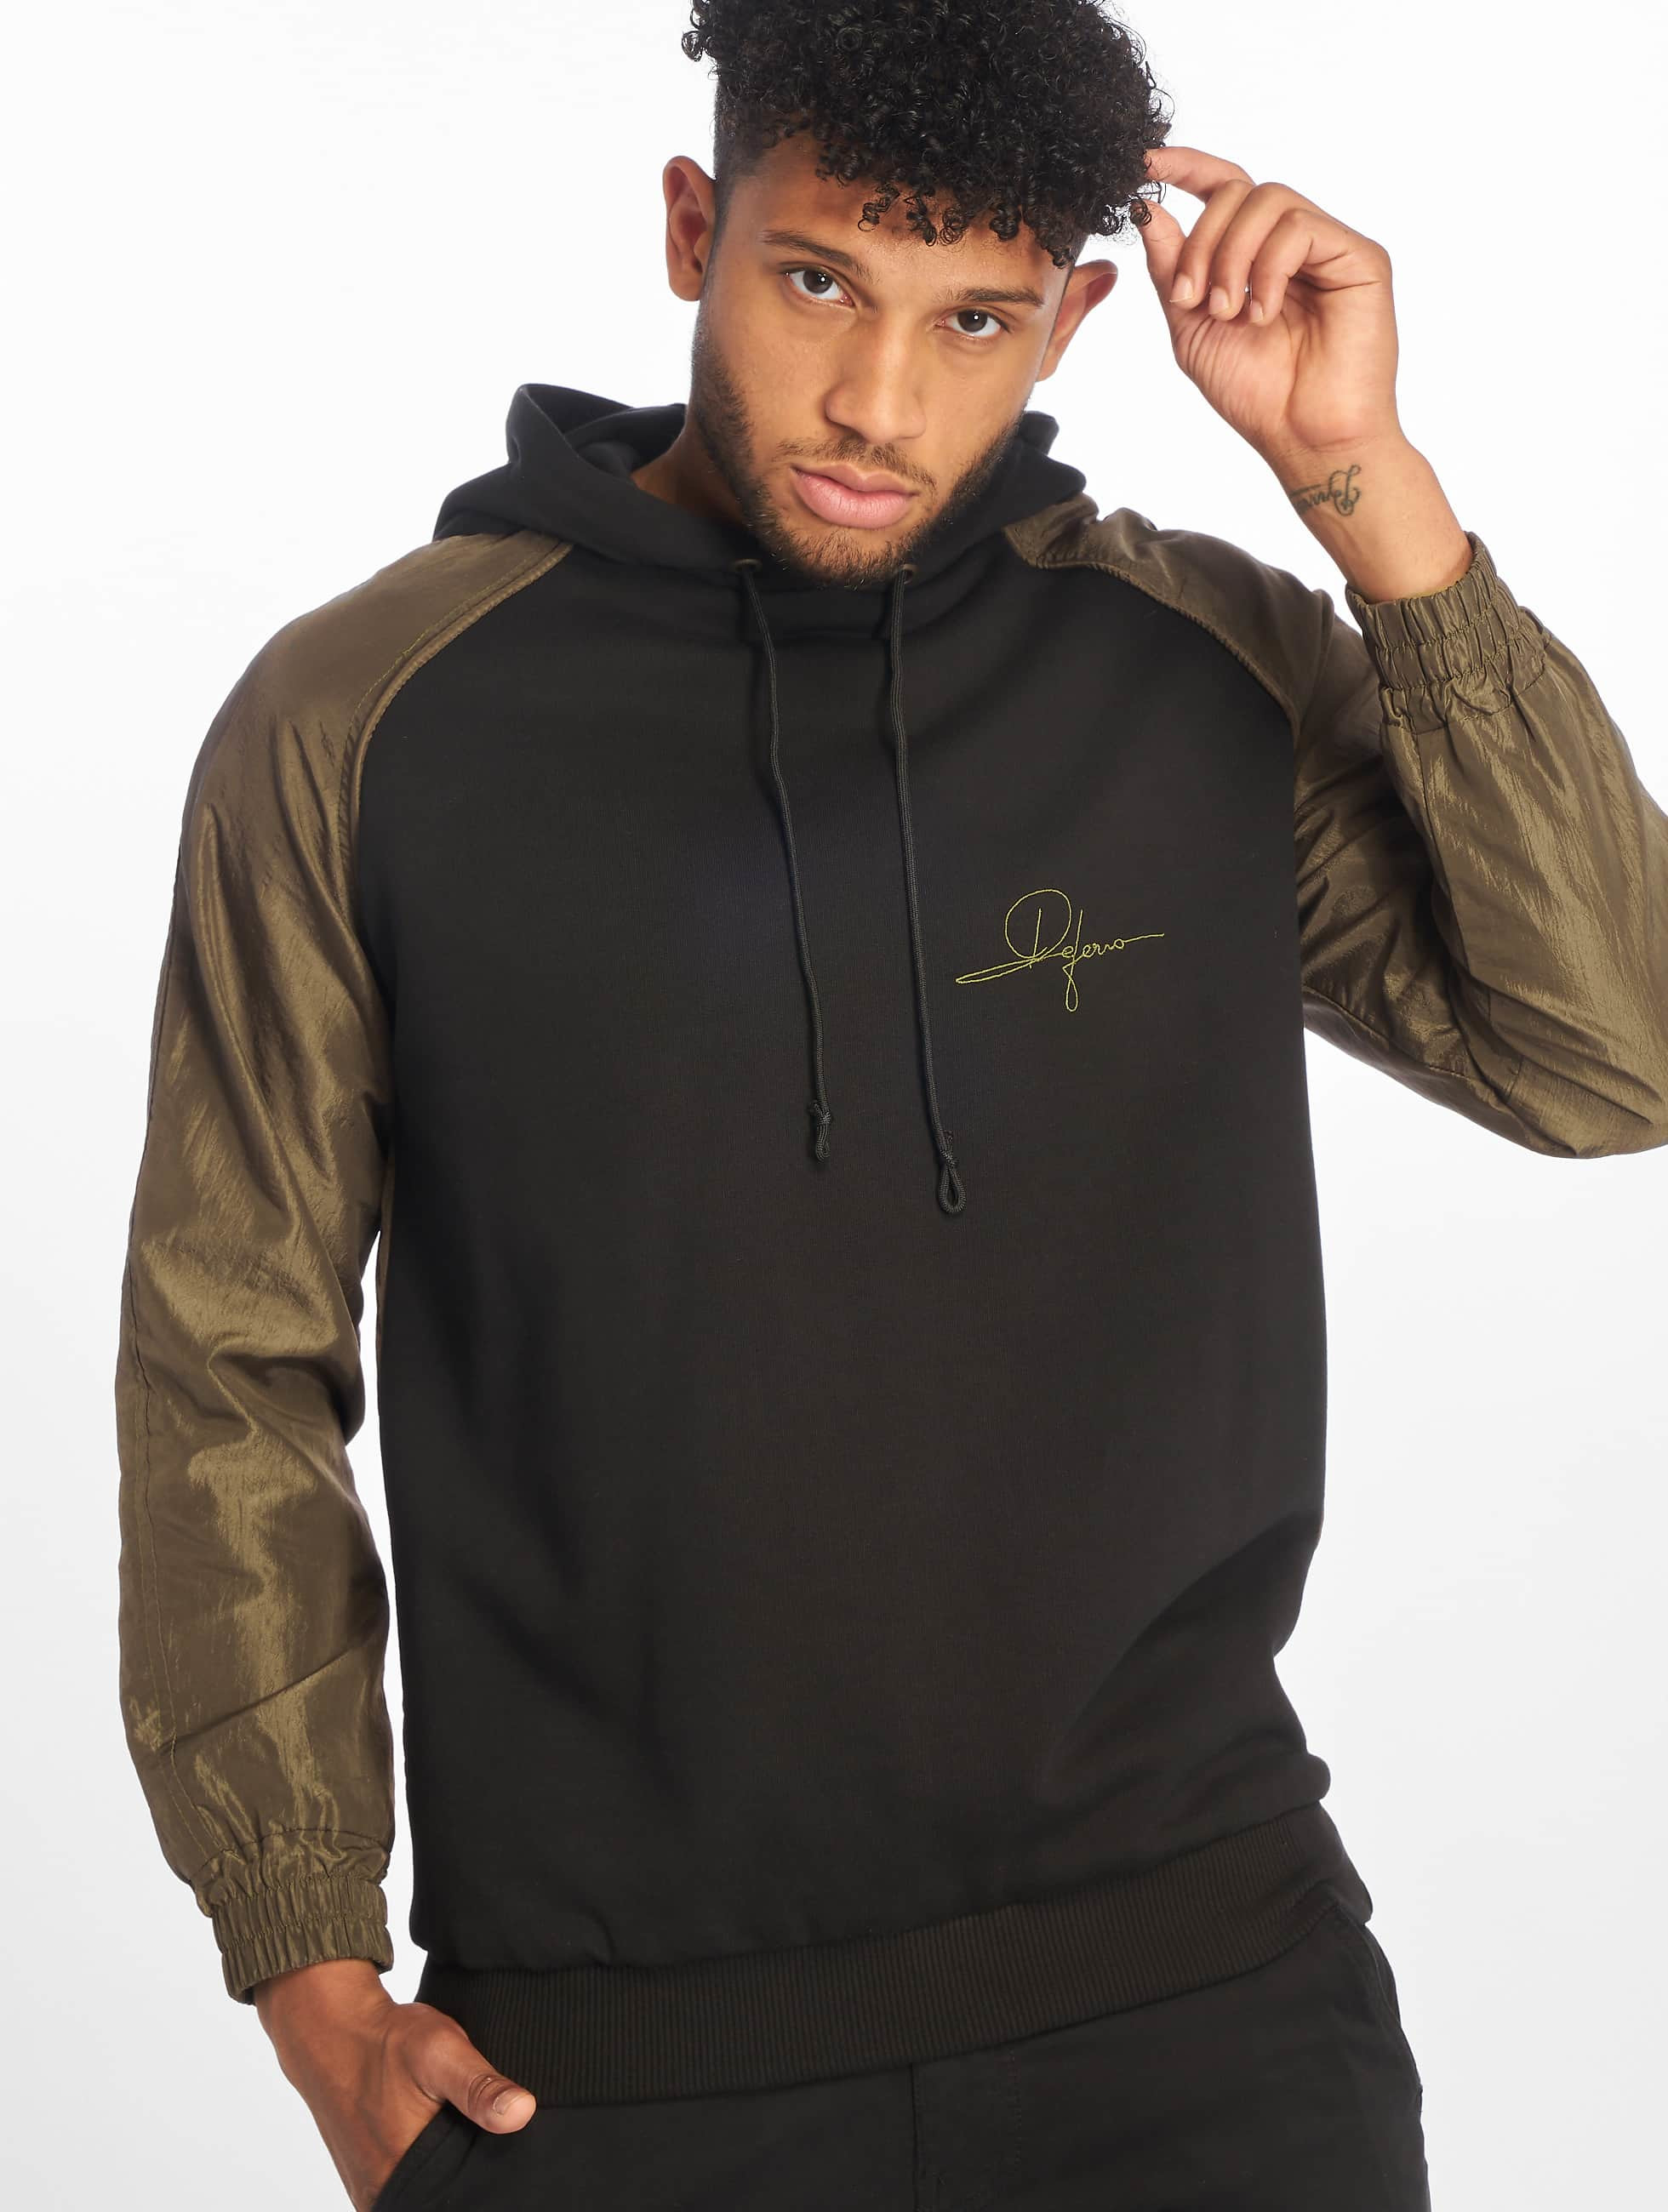 De Ferro / Hoodie Double Trouble in black L